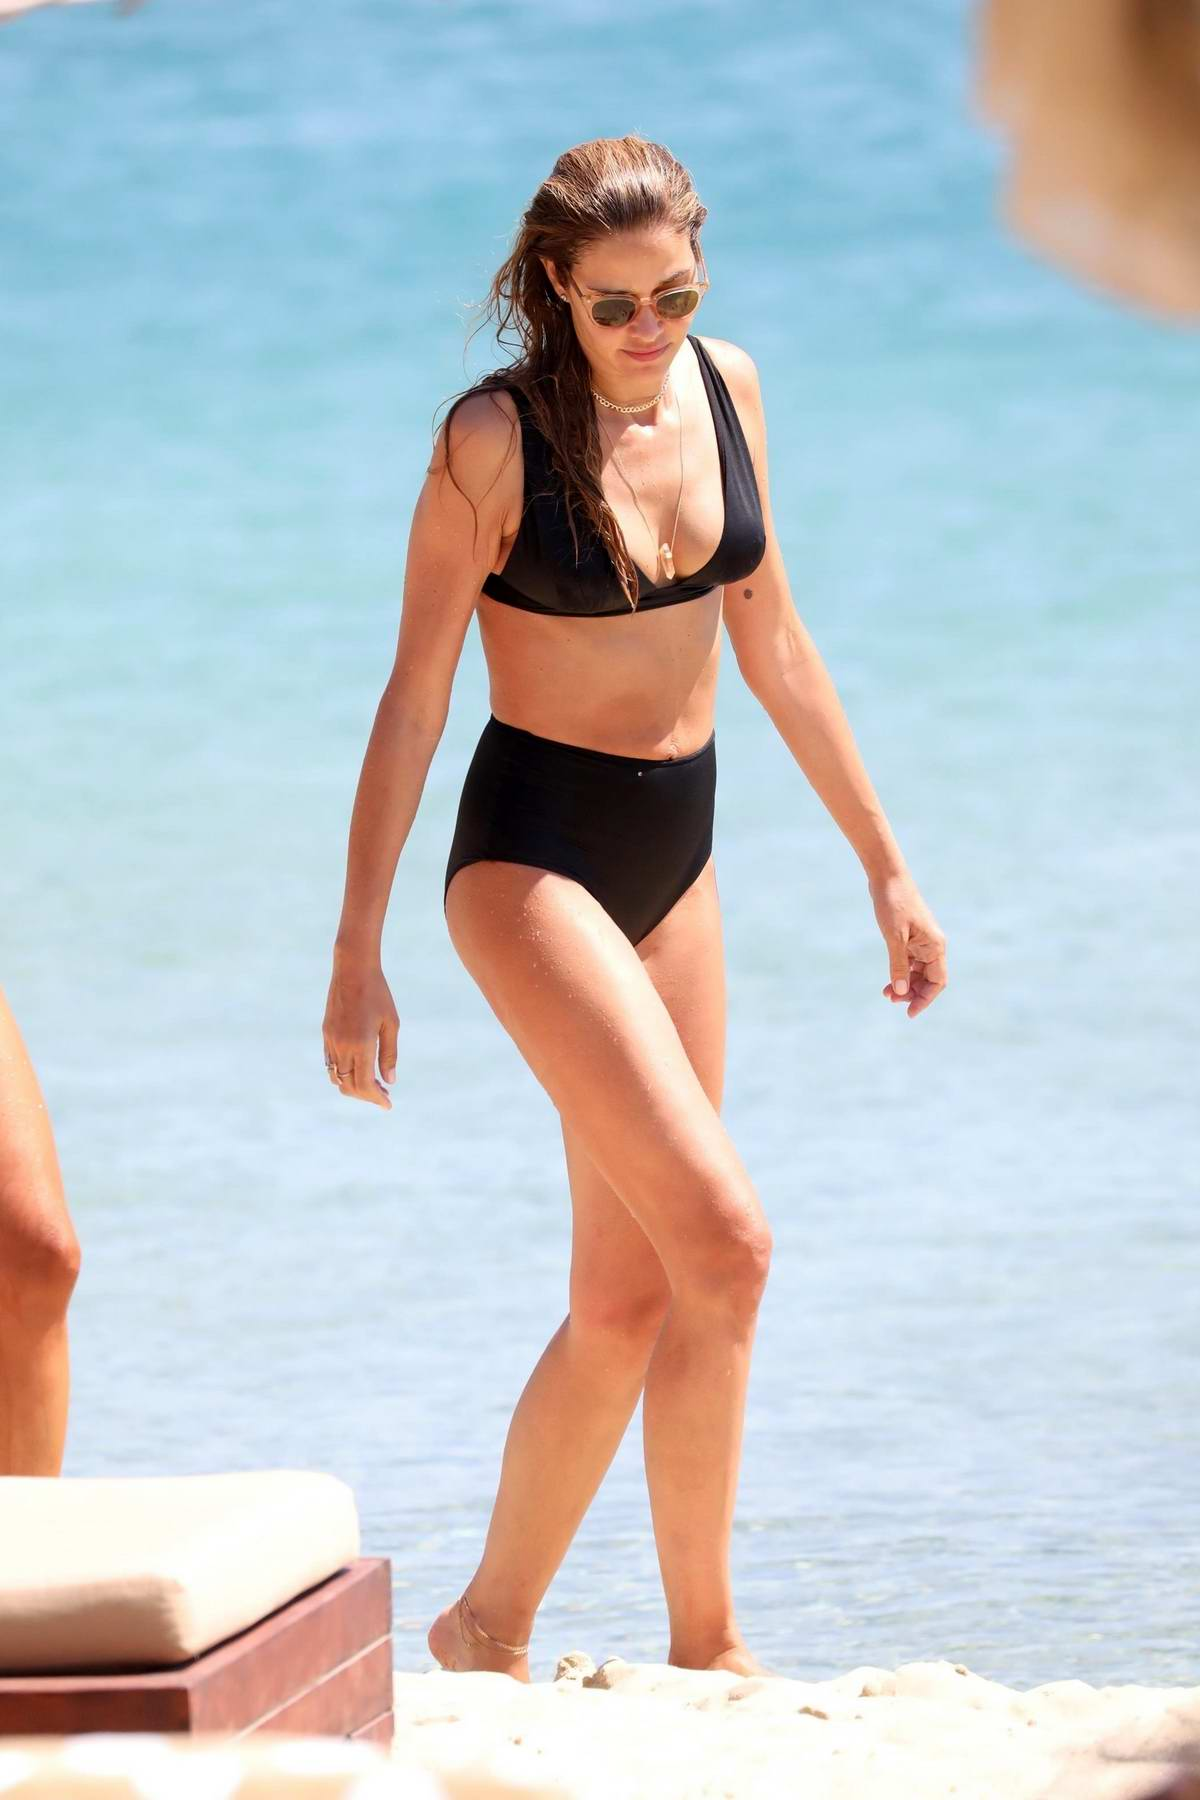 Ana Beatriz Barros dons a black bikini as she spends a day on the beach while on holiday in Mykonos, Greece